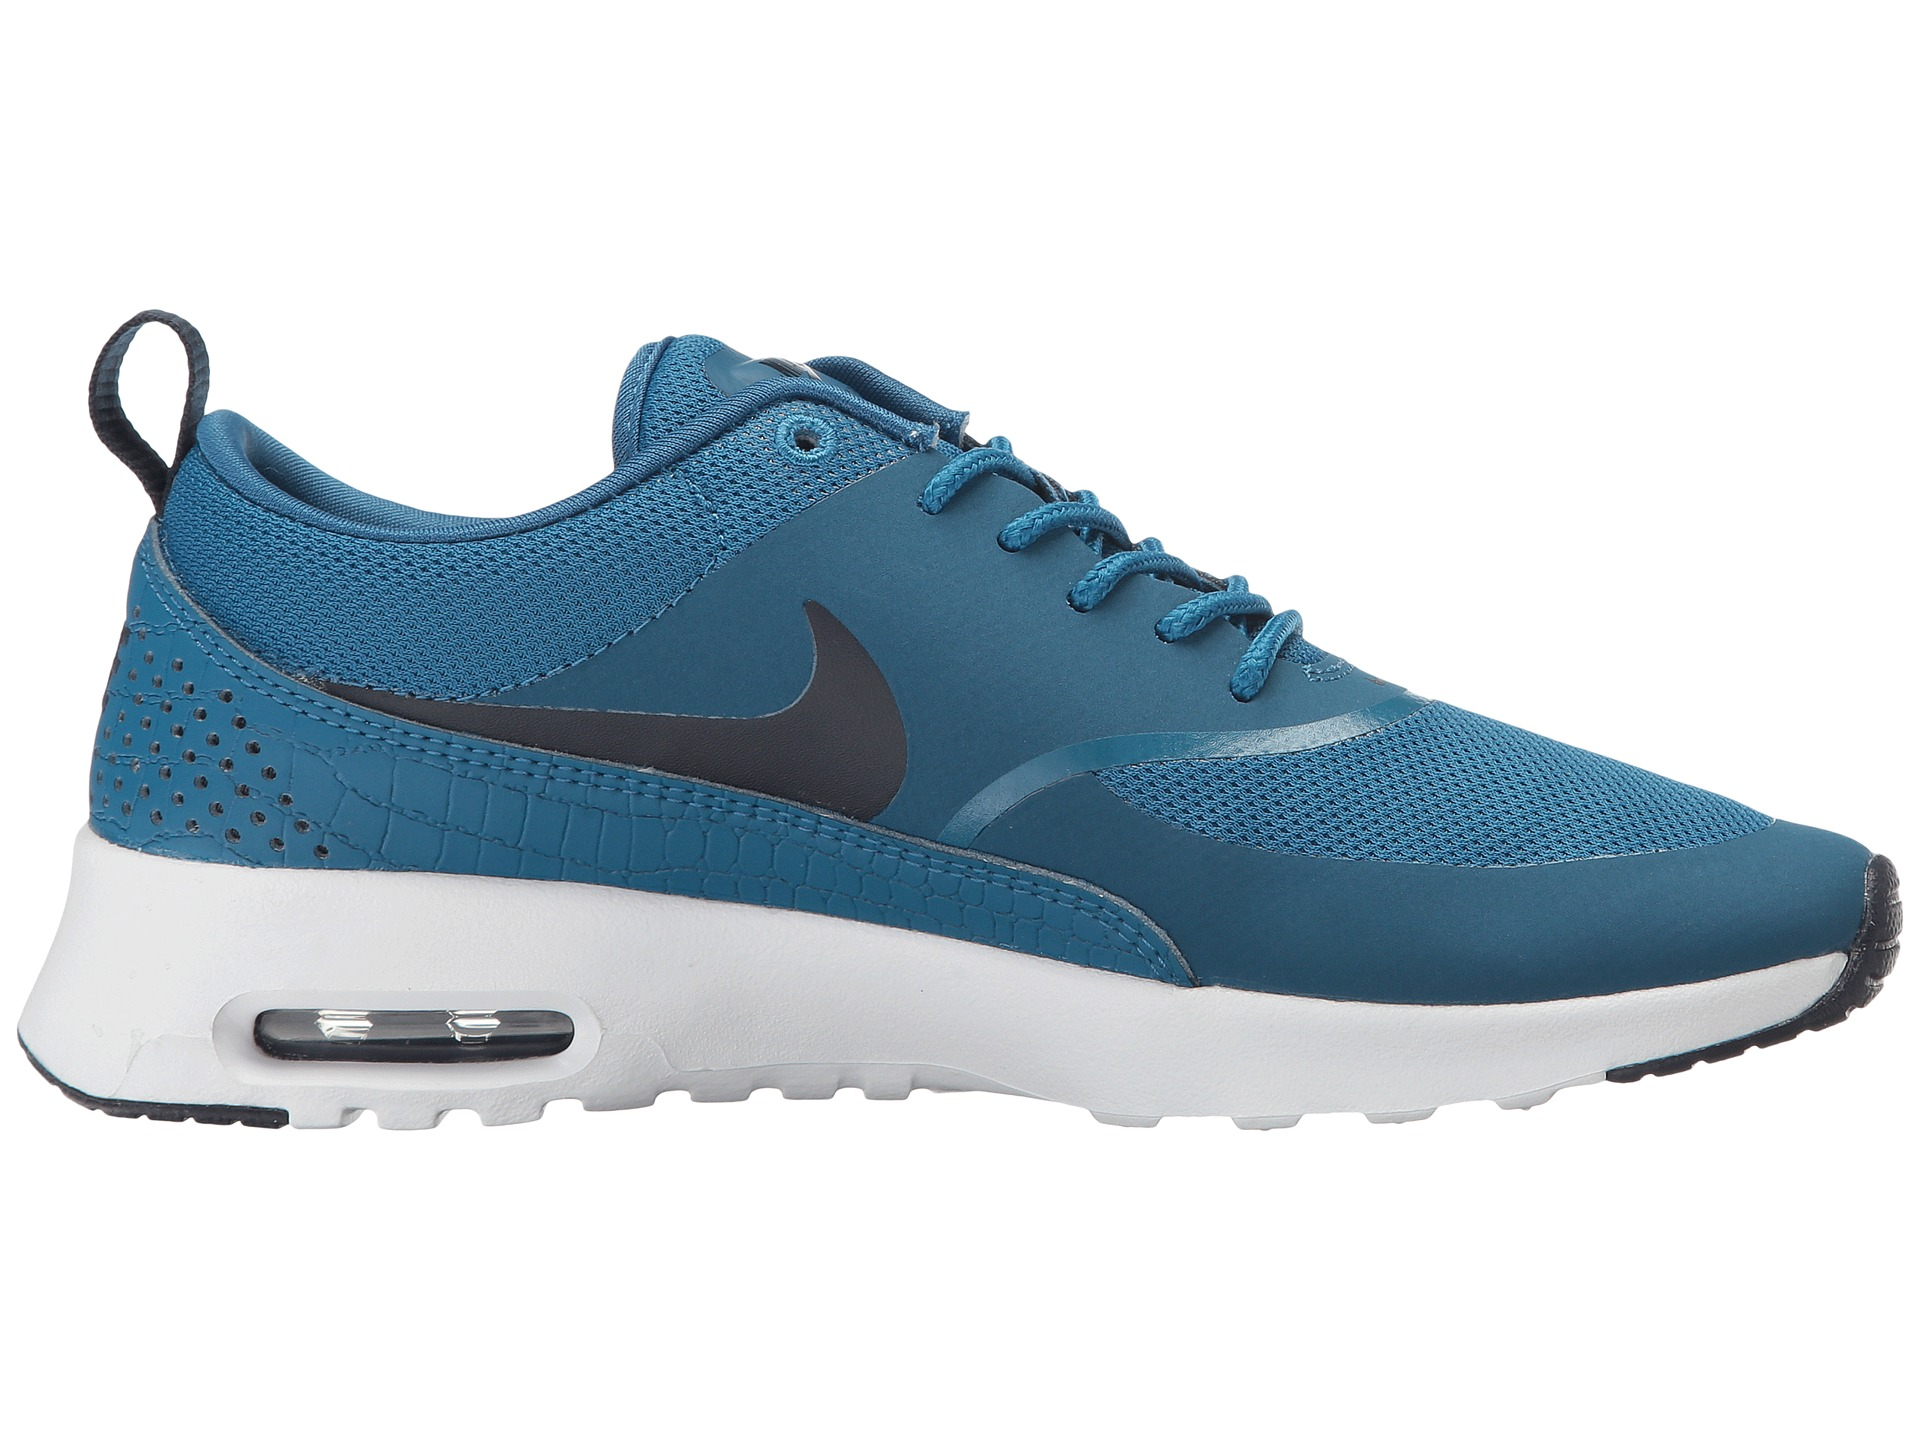 5921146f1ae21 ... low price nike air max thea zappos eec8a 81916